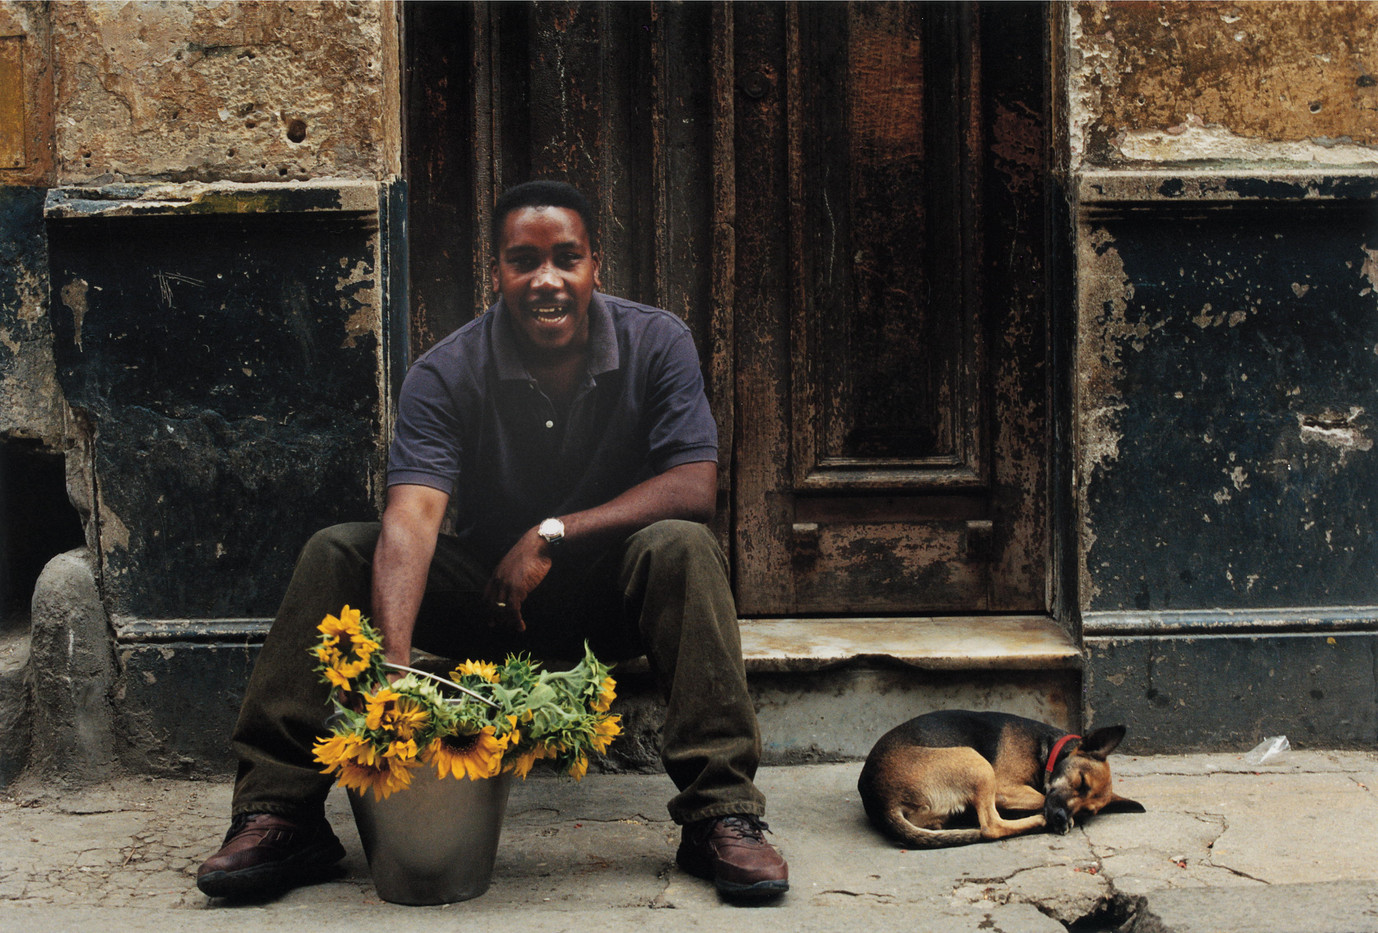 The florist and his dog.